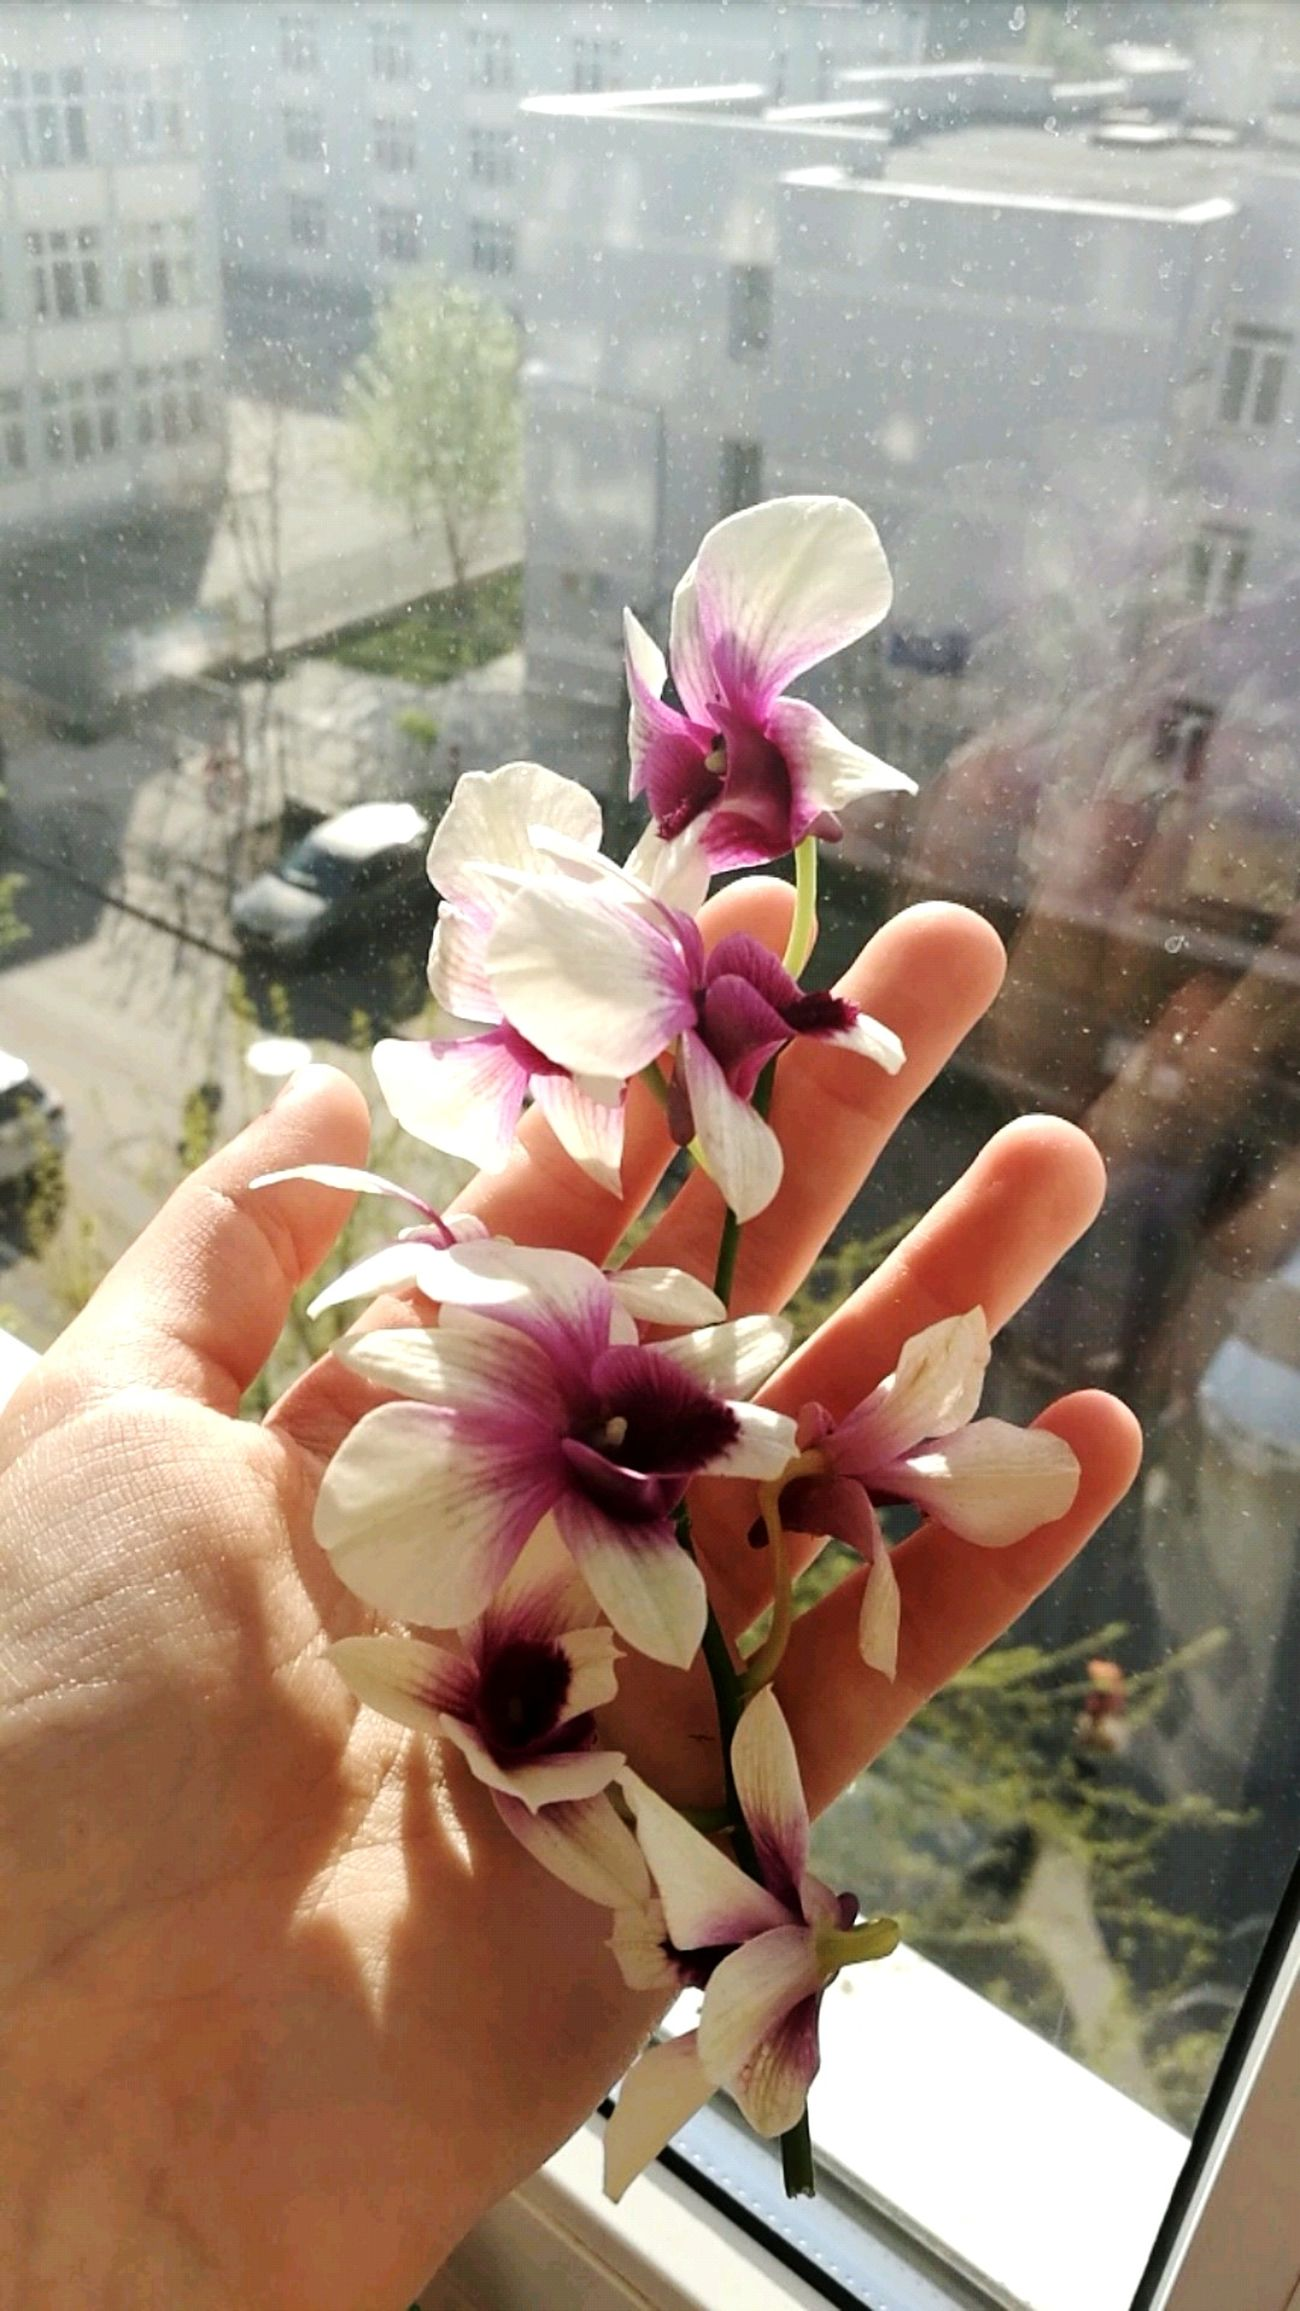 Flower Flower Power🌼 Pink Flower 🌸 Pink&white Petal Nature Daylight Nature Lover🌳🍃🍂🌿 Plant Plant Lover Window Indoors  Close-up Human Body Part Human Hand Freshness Fragility Enjoy The Little Things